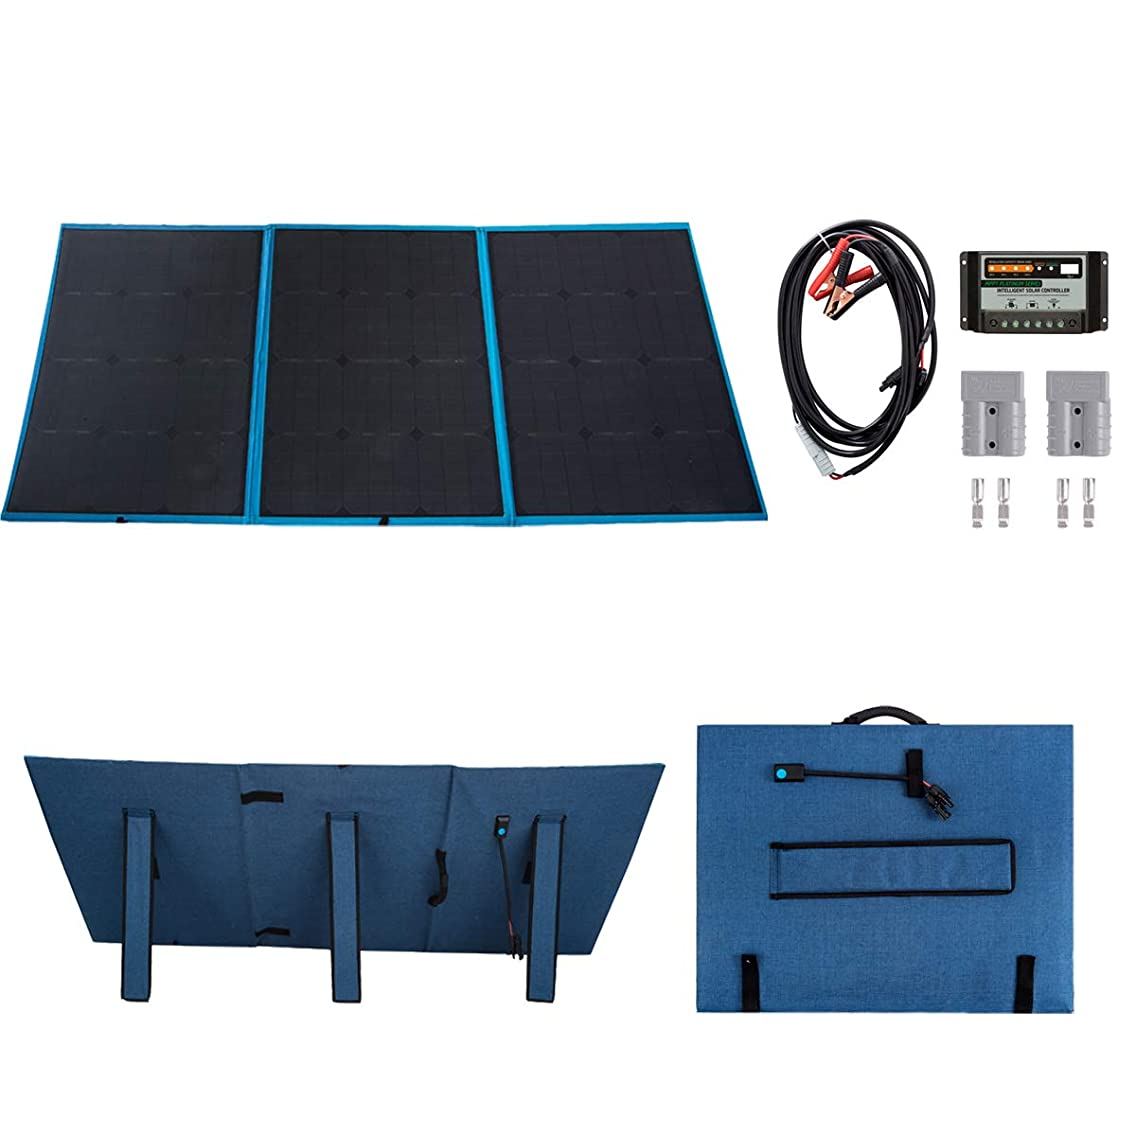 Betop-camp 150Watt Folding Solar Panel, 12V Monocrystalline18V Portable Solar Charger with a 10A Solar Charge Controller for Camping, Caravanning, Motorhome, Laptop, Boat Battery 12V System (Blue)